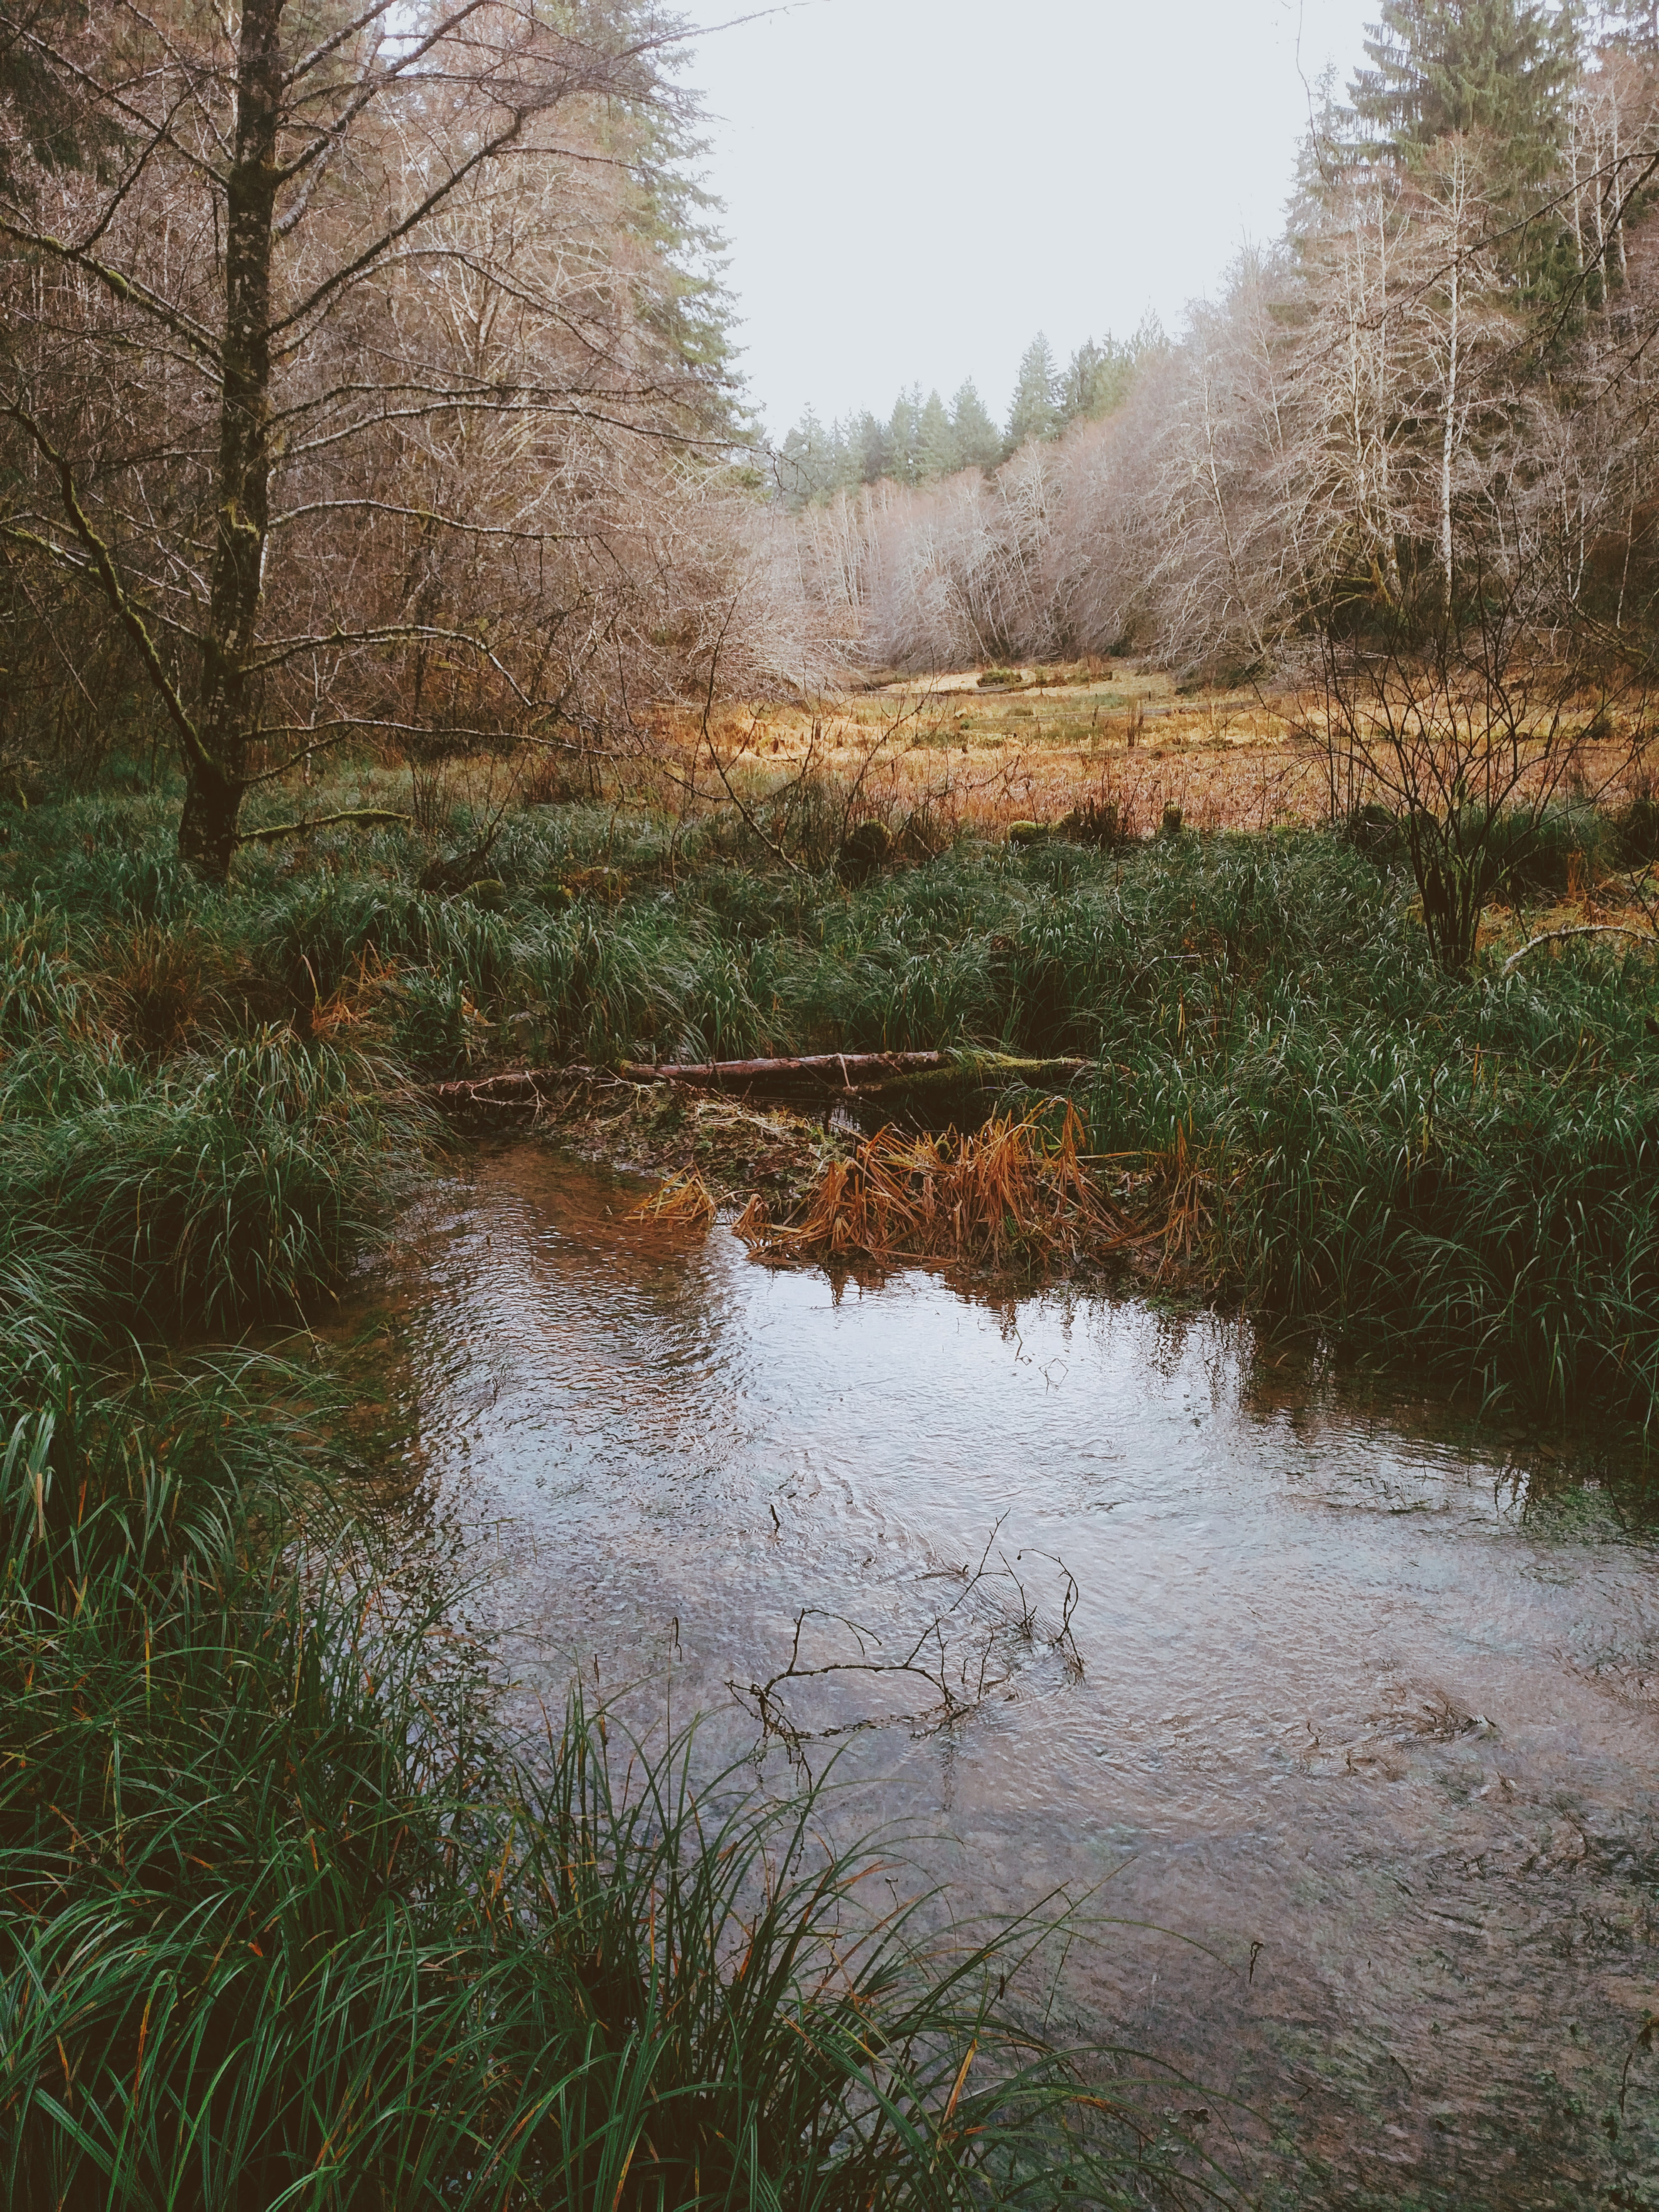 body of water near withered trees